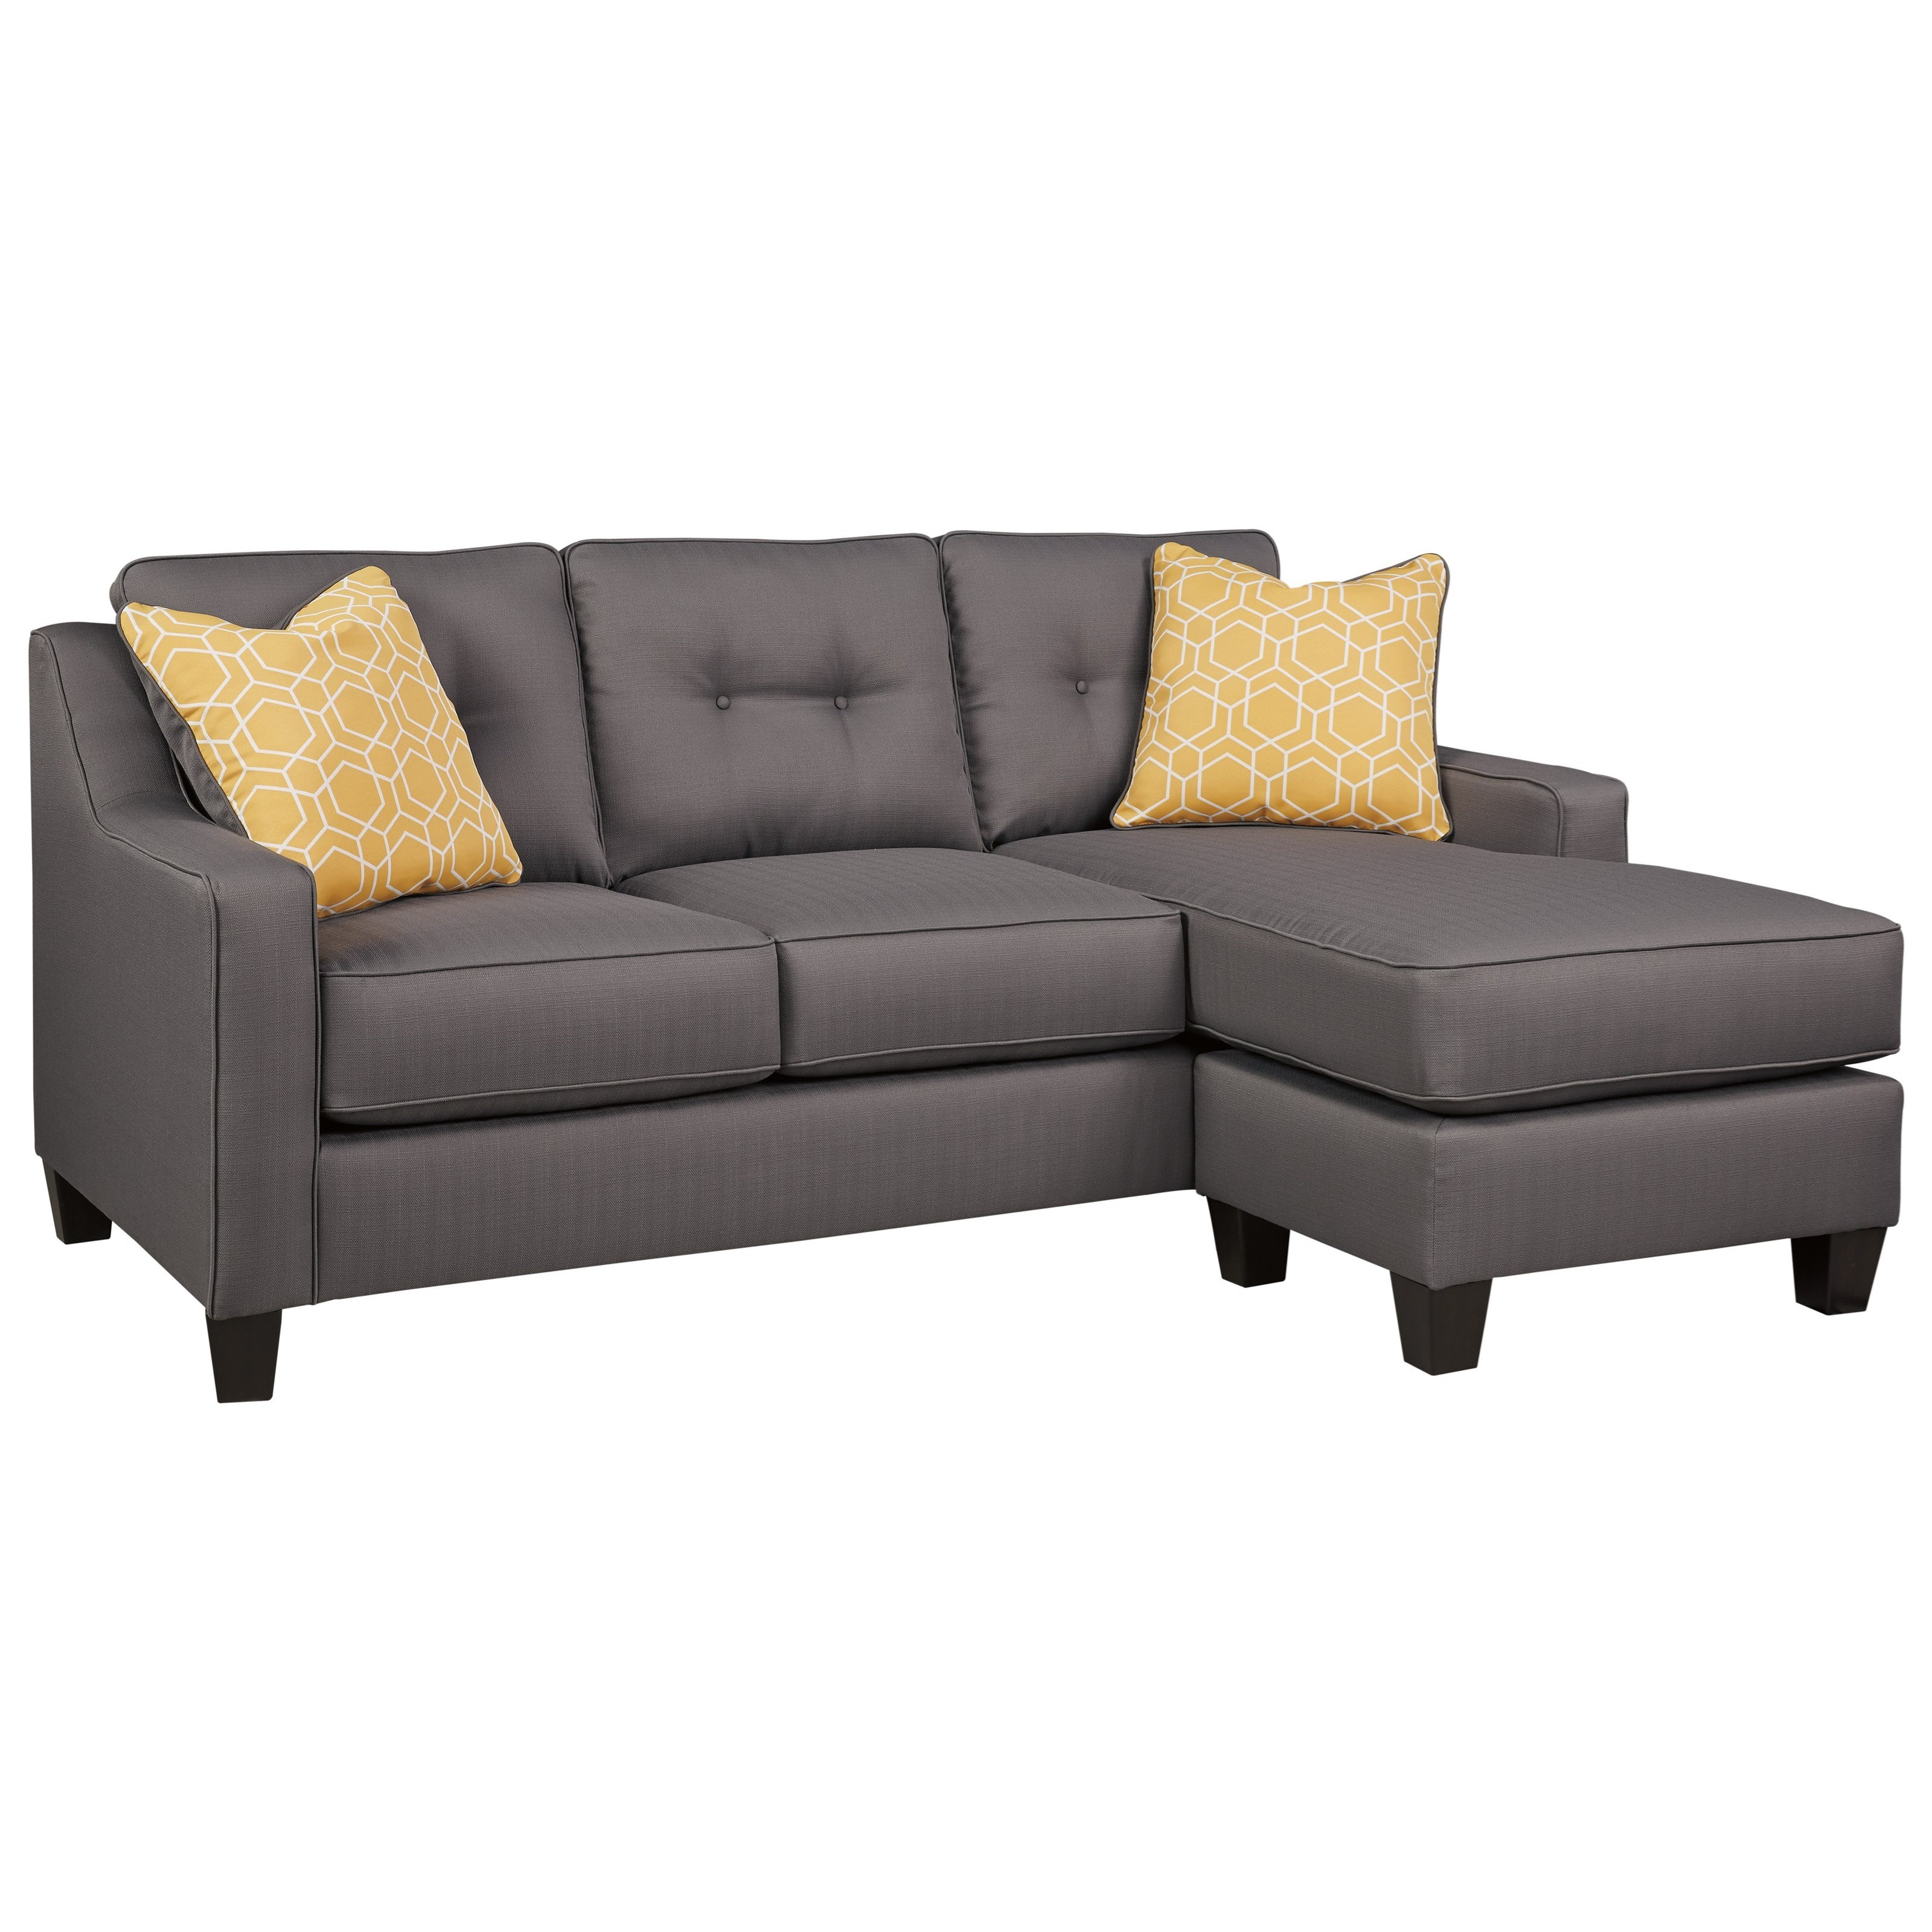 sleeper sofa chaise sectional my art aberdeen benchcraft aldie nuvella 6870268 queen